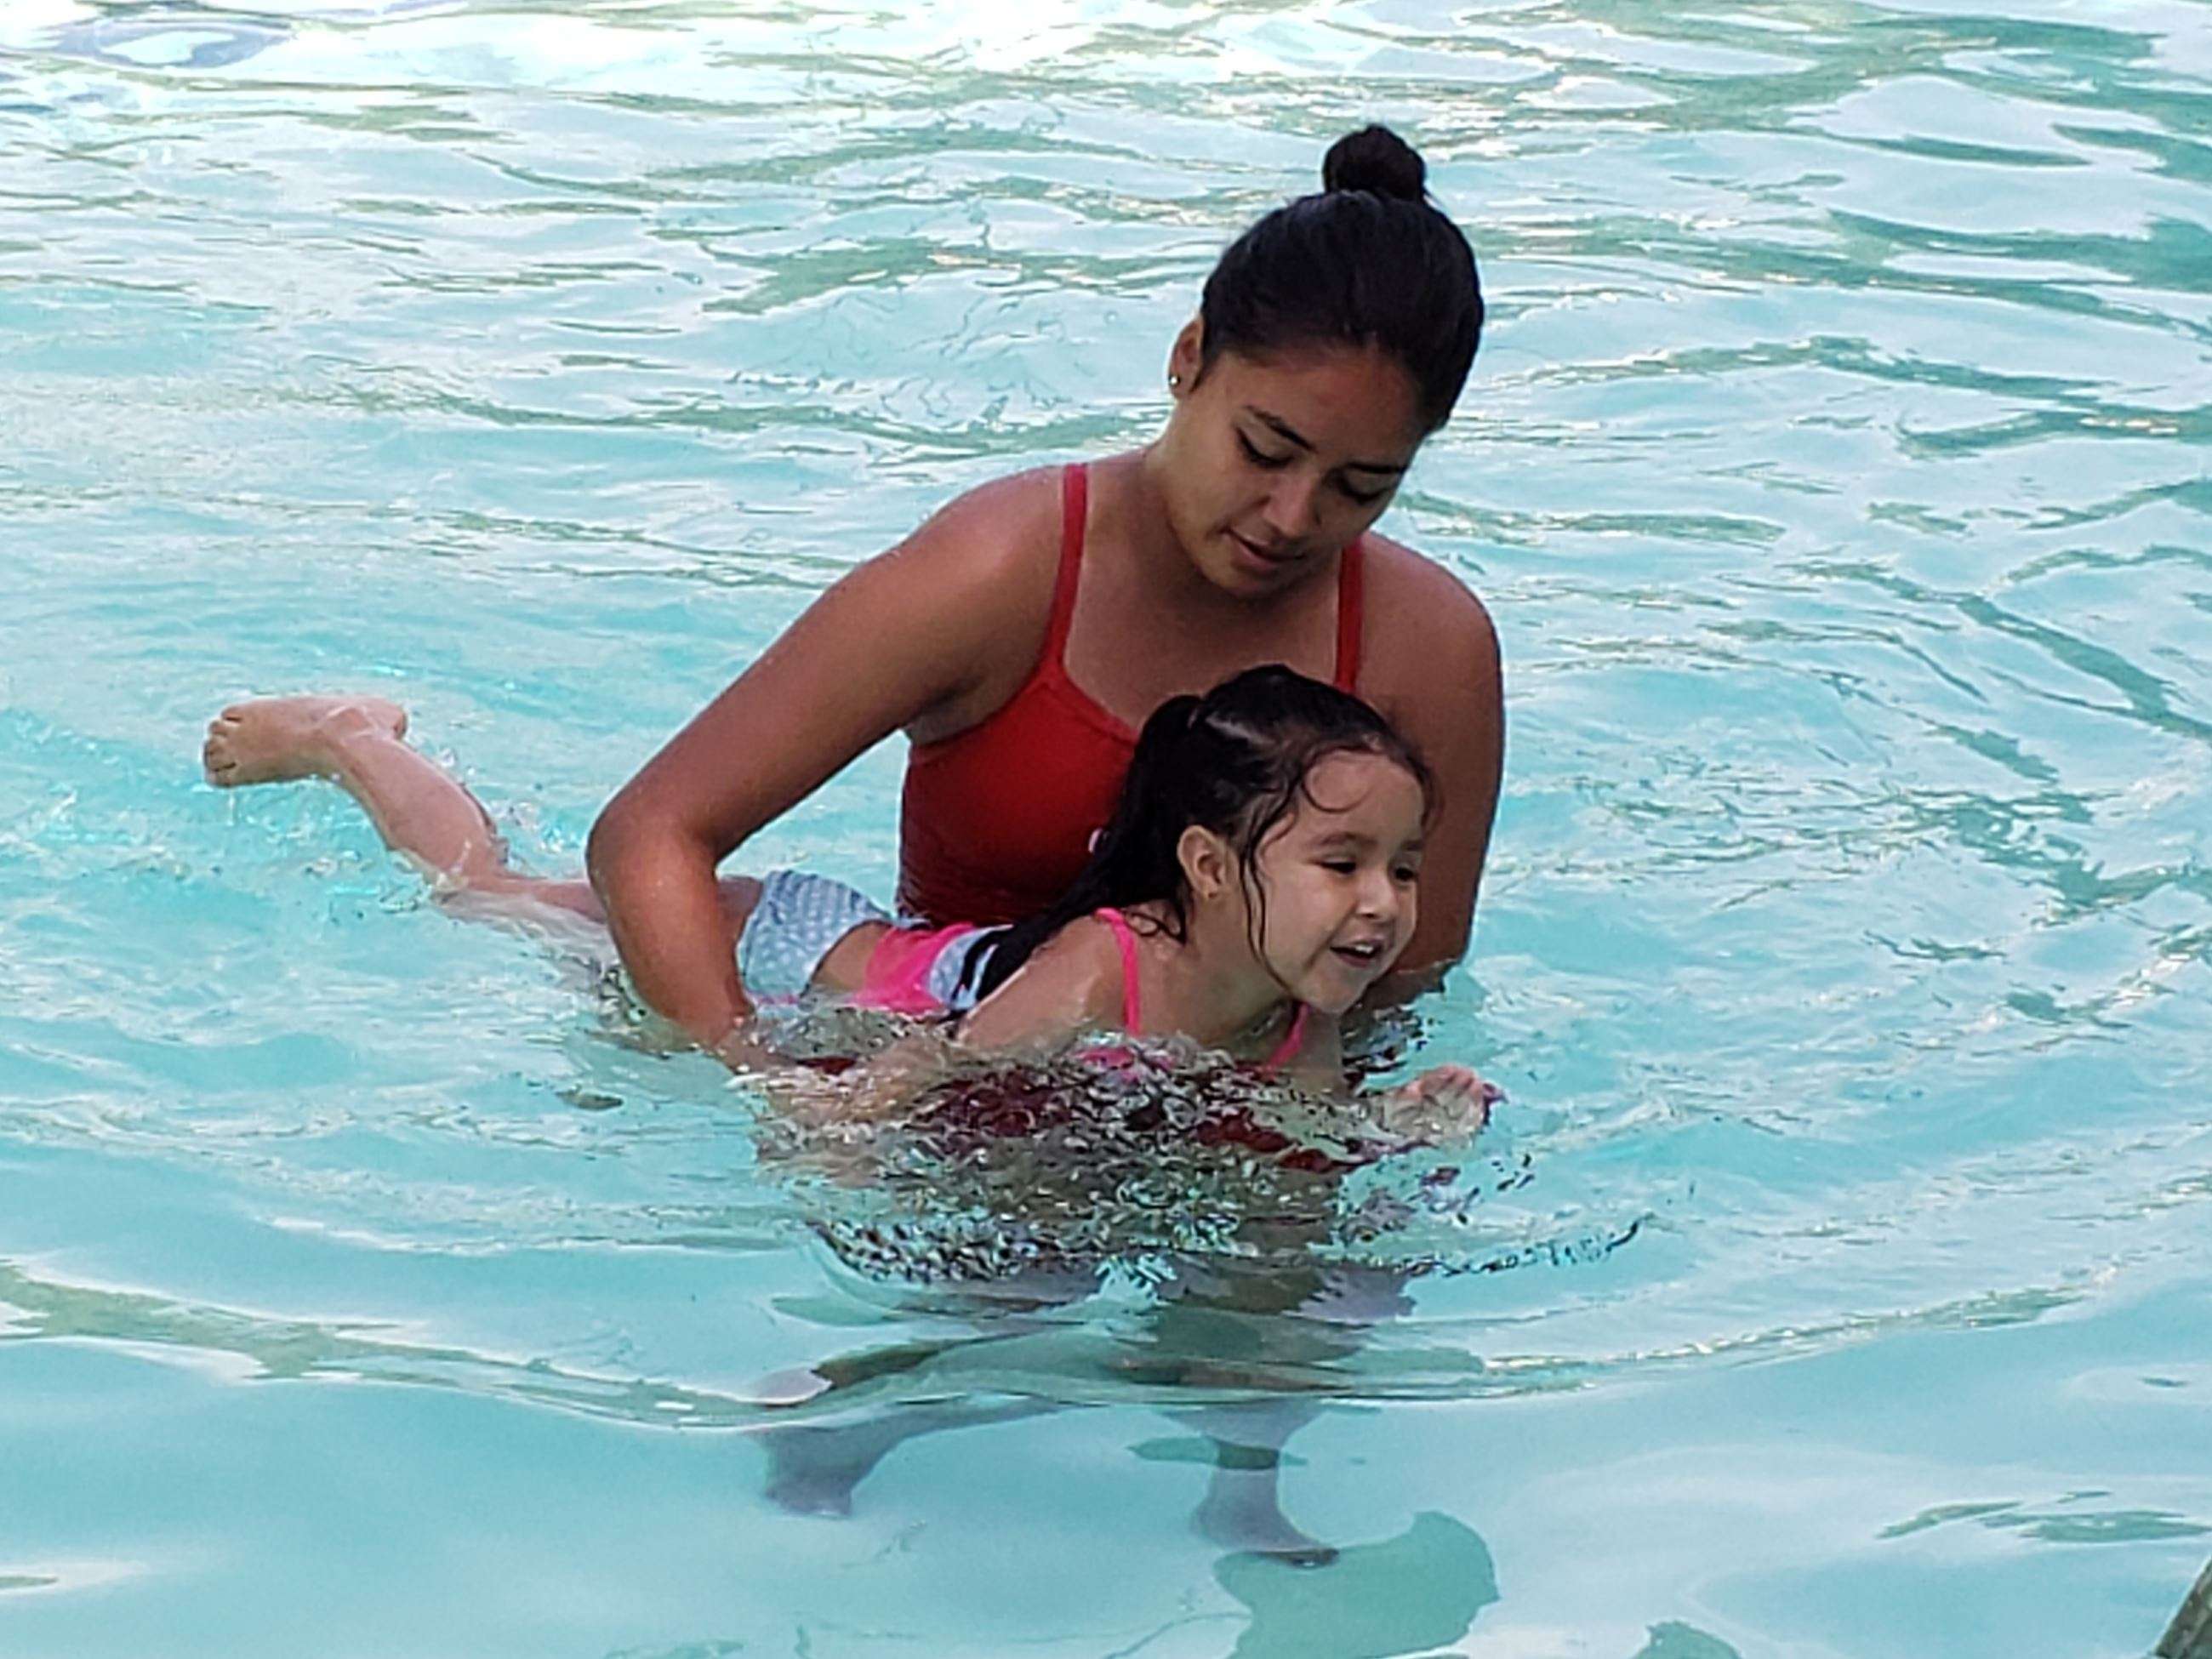 Swim lesson instructor with girl in pool